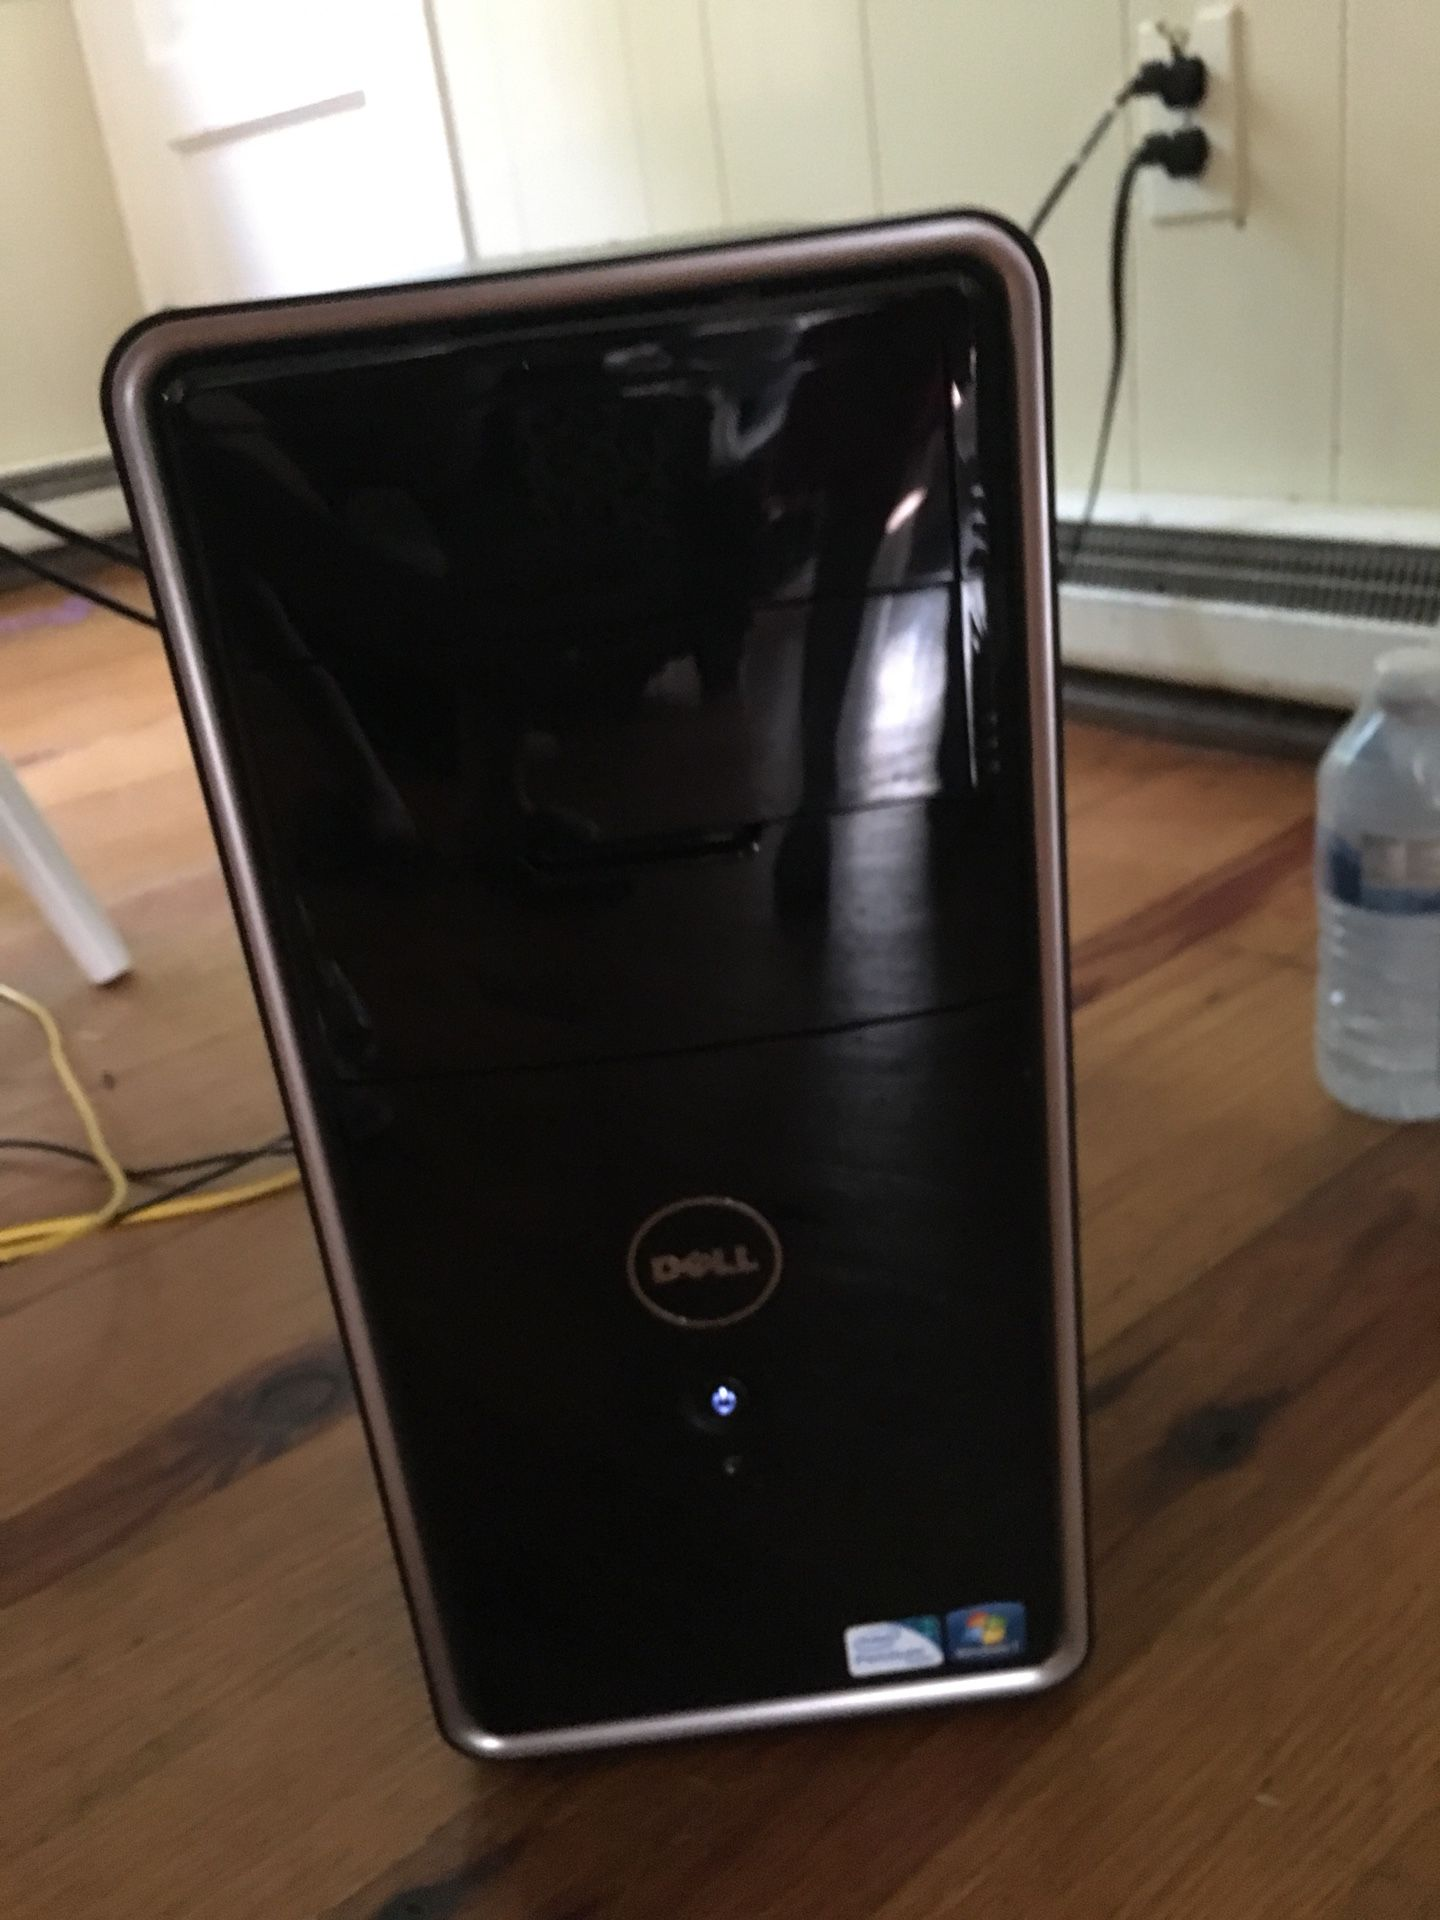 Inspiron 560 PC with 17 inch monitor, keyboard and mouse